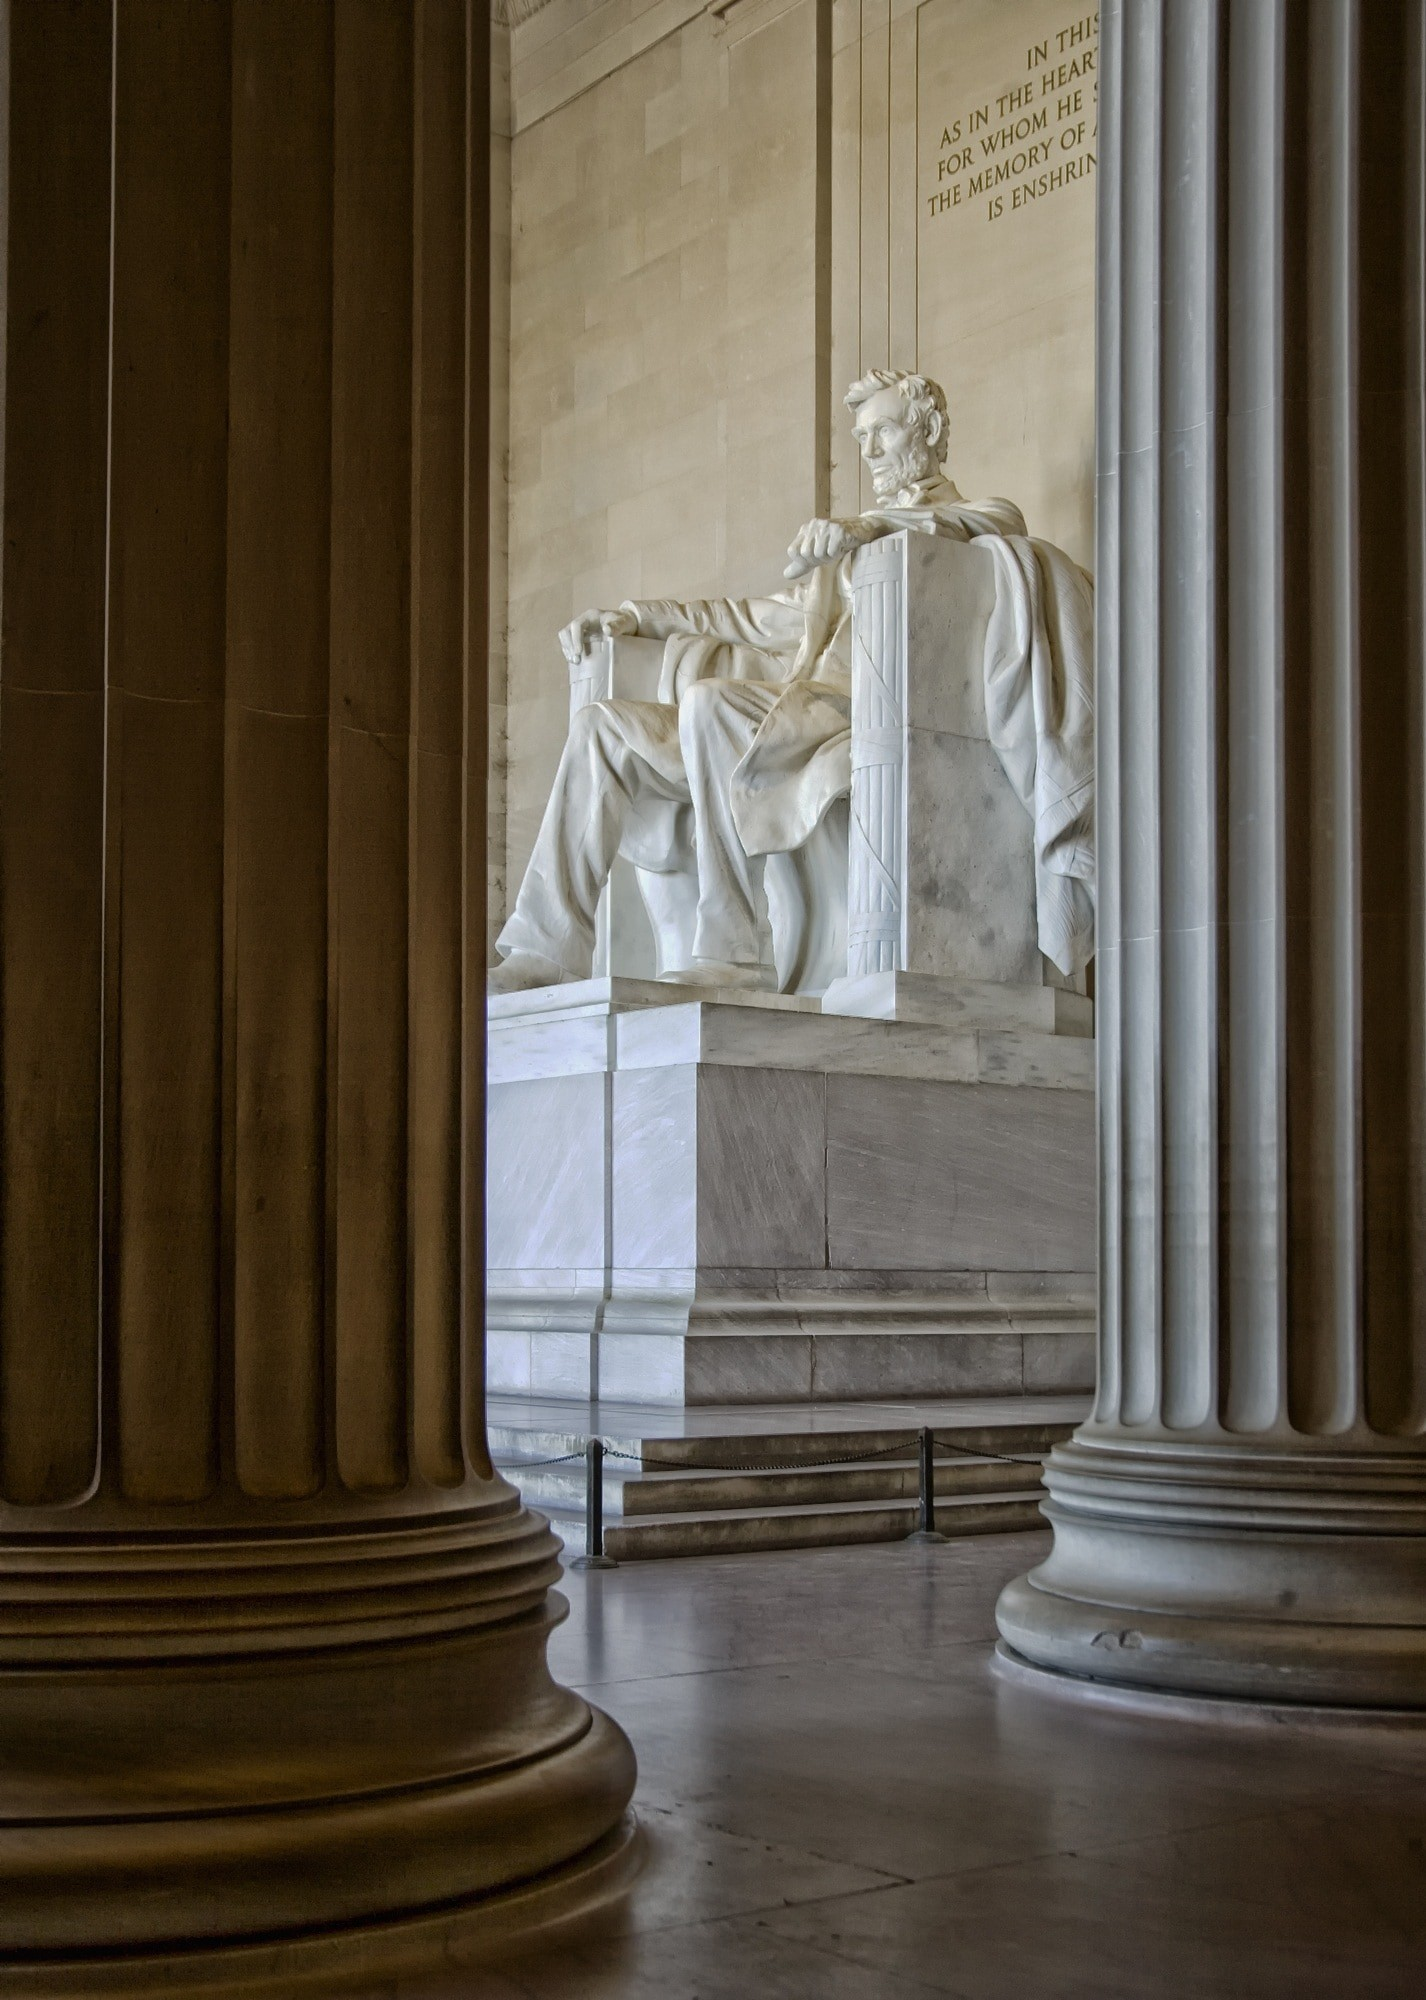 Res: 1426x2000, abraham lincoln statue